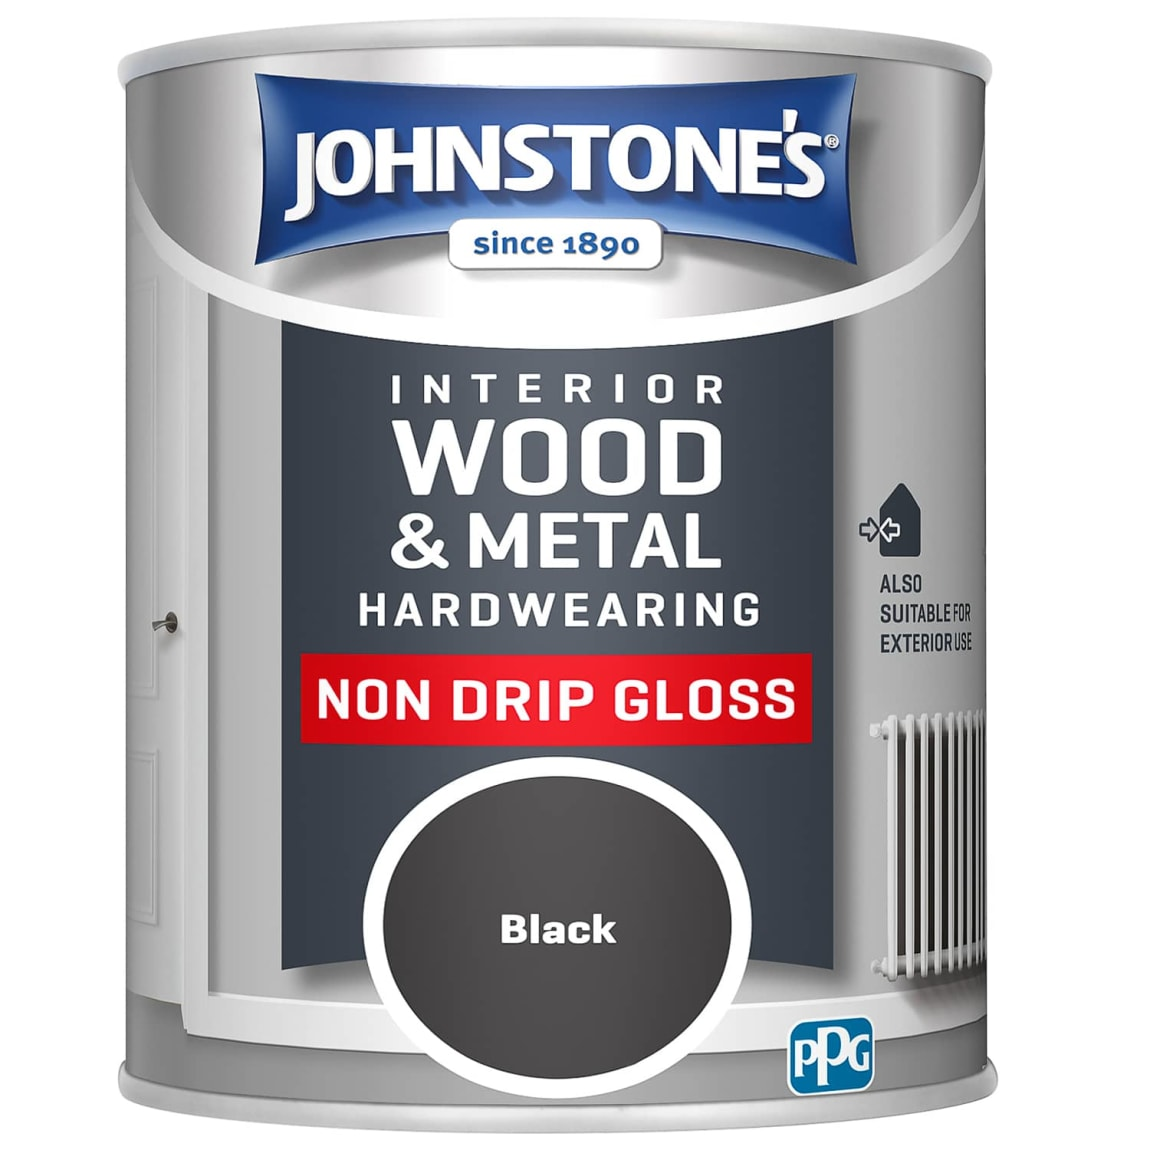 Johnstone's Hardwearing Non Drip Gloss Paint 750ml - Black